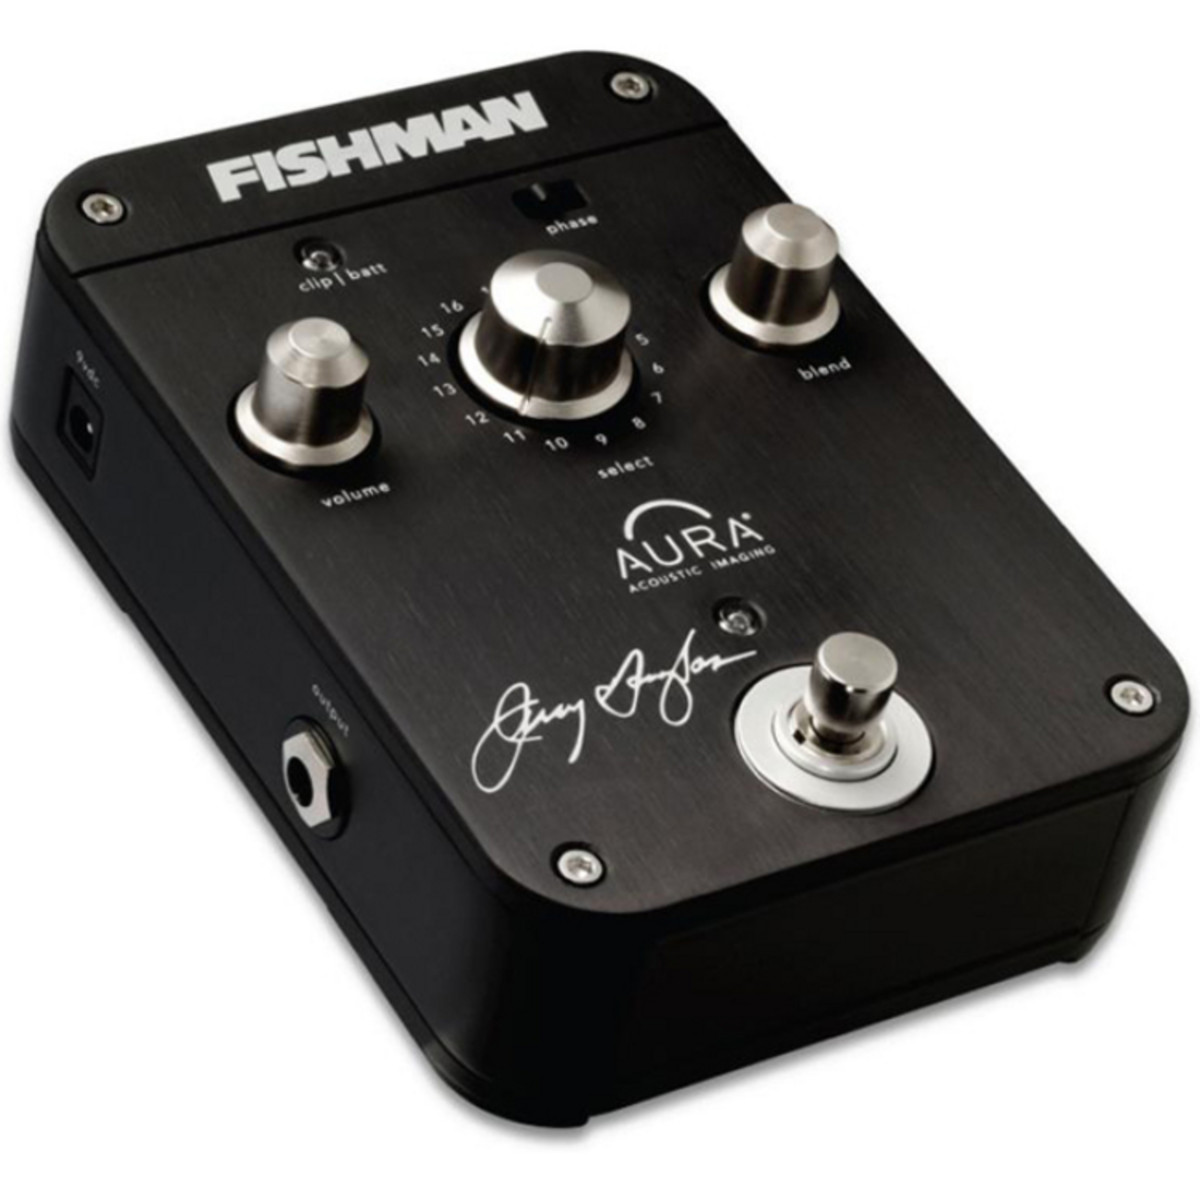 Image of Fishman Jerry Douglas Signature Aura Imaging Pedal